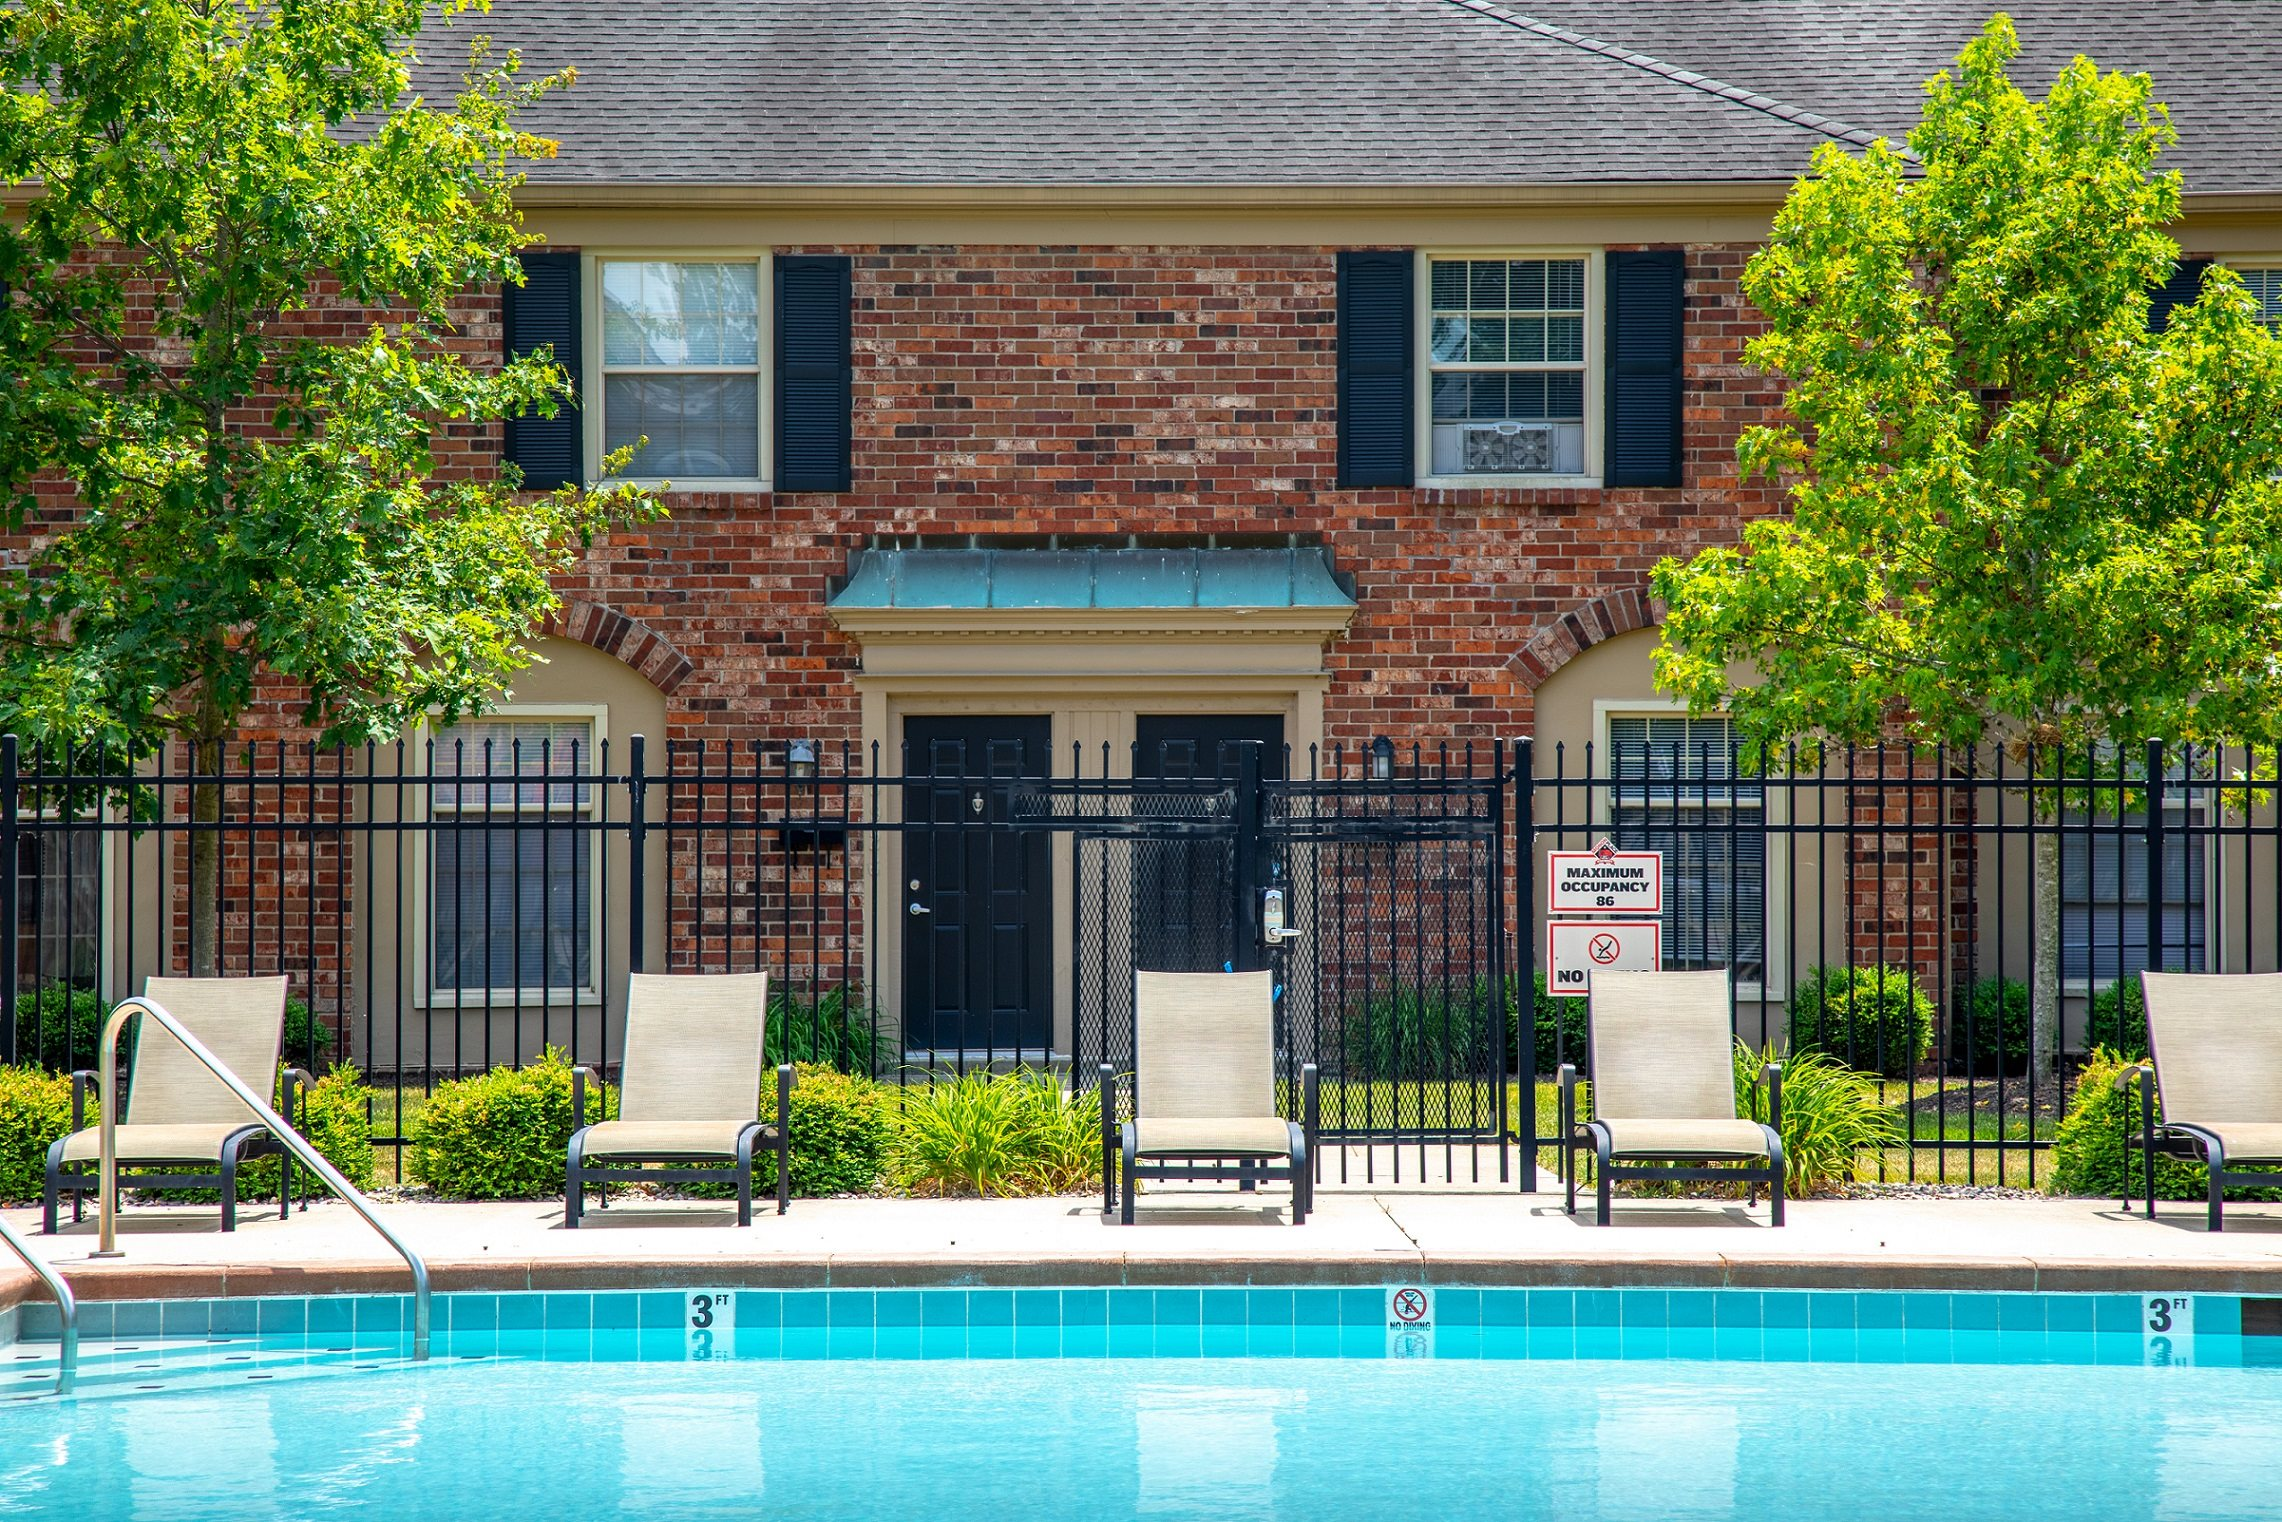 Swimming Pool With Relaxing Sundecks at Buckingham Monon Living, Indianapolis